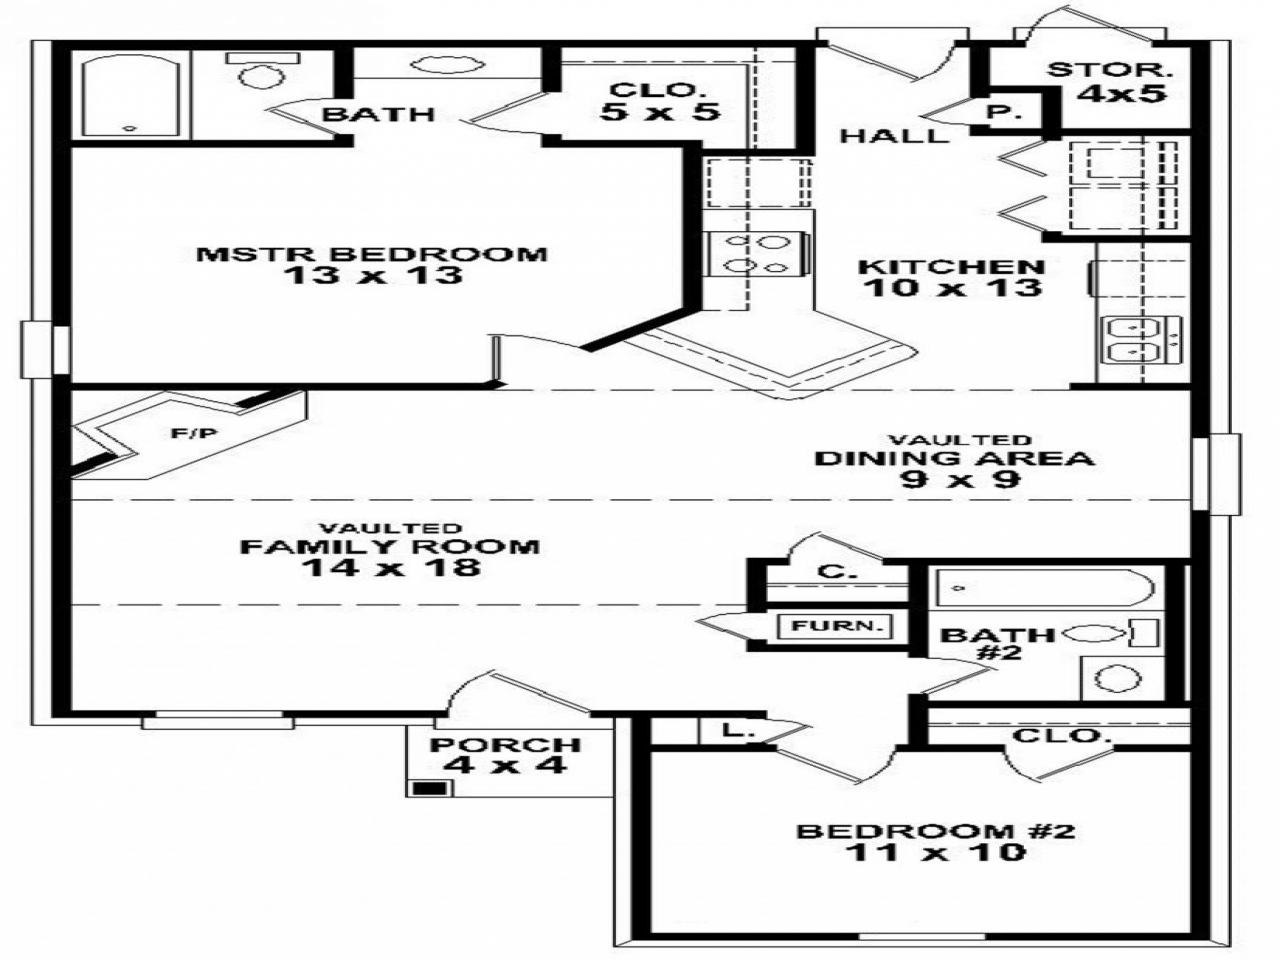 Stunning Plan For Two Bedroom House 23 Photos